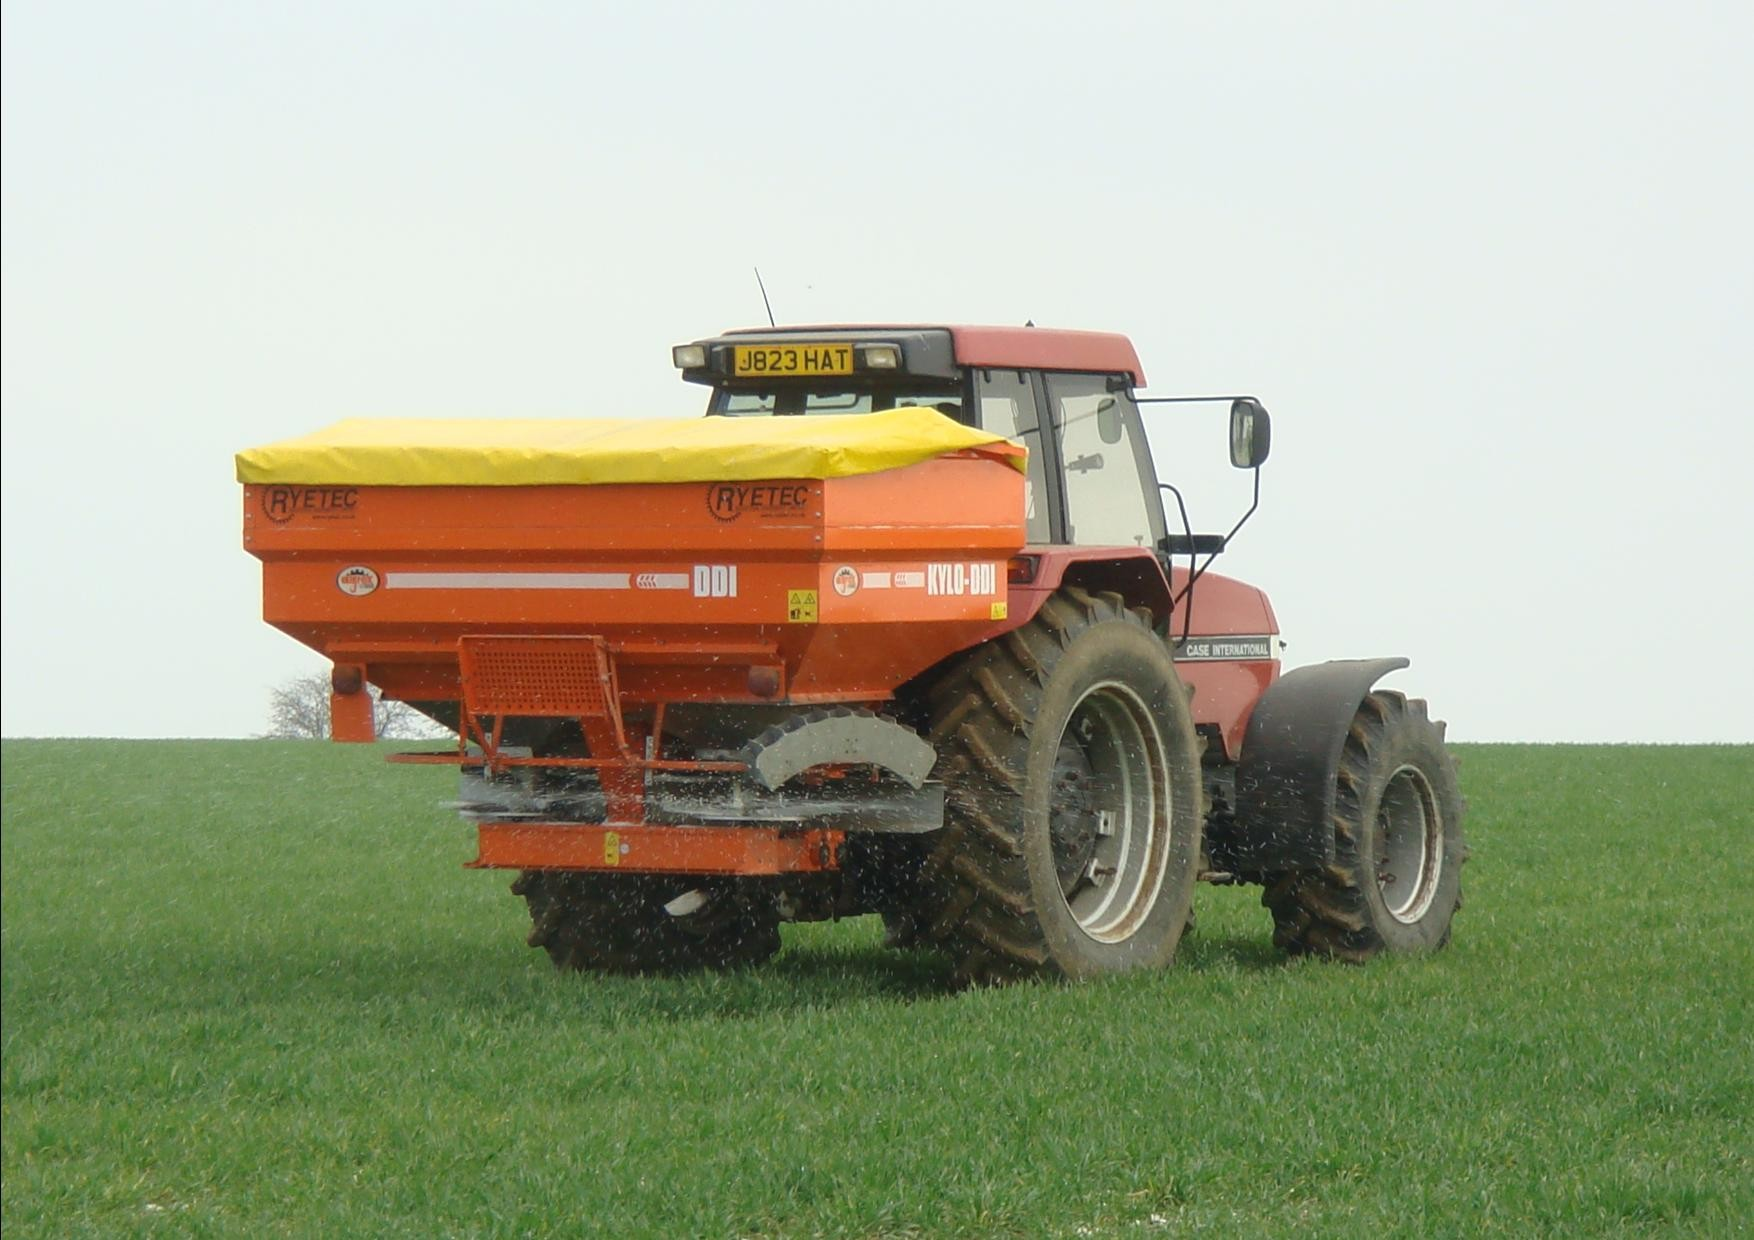 Ryetec Agrex DDI weigh cell RDS computer controlled variable rate fertiliser spreader